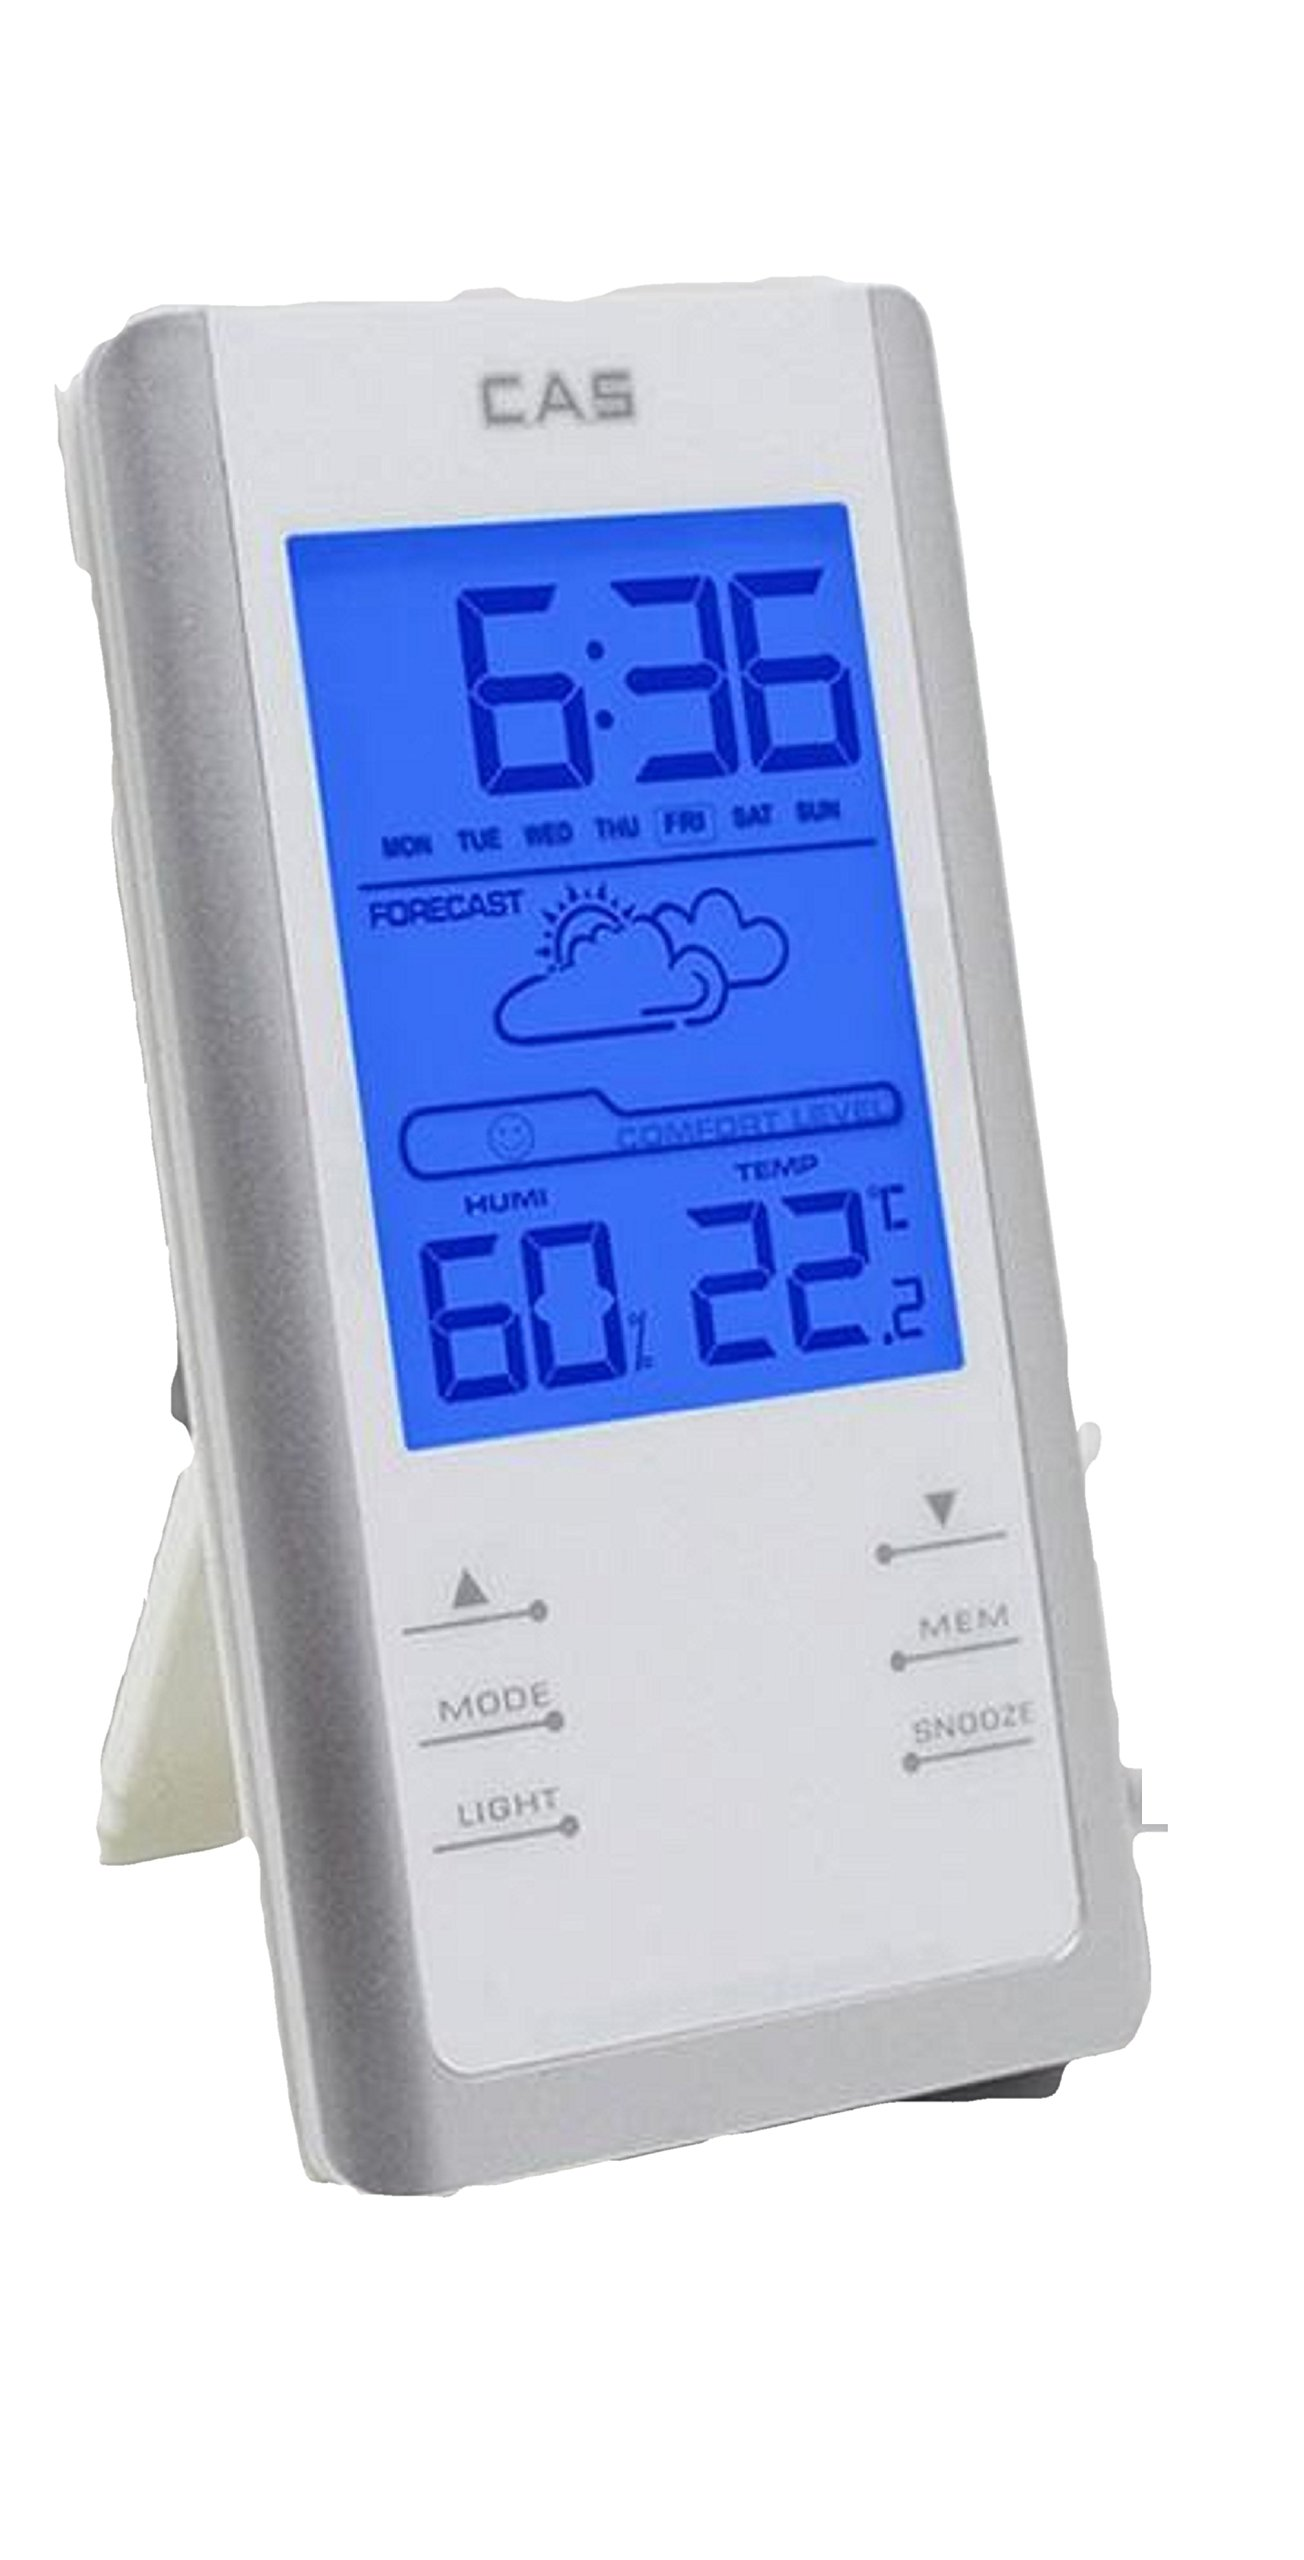 Digital Thermo-Hygrometer Clock, Temperature, Humidity Alarms and Snooze Support Fahrenheit and Celsius, 2 AAA Batteries Operated(Not Included) Blue Backlight